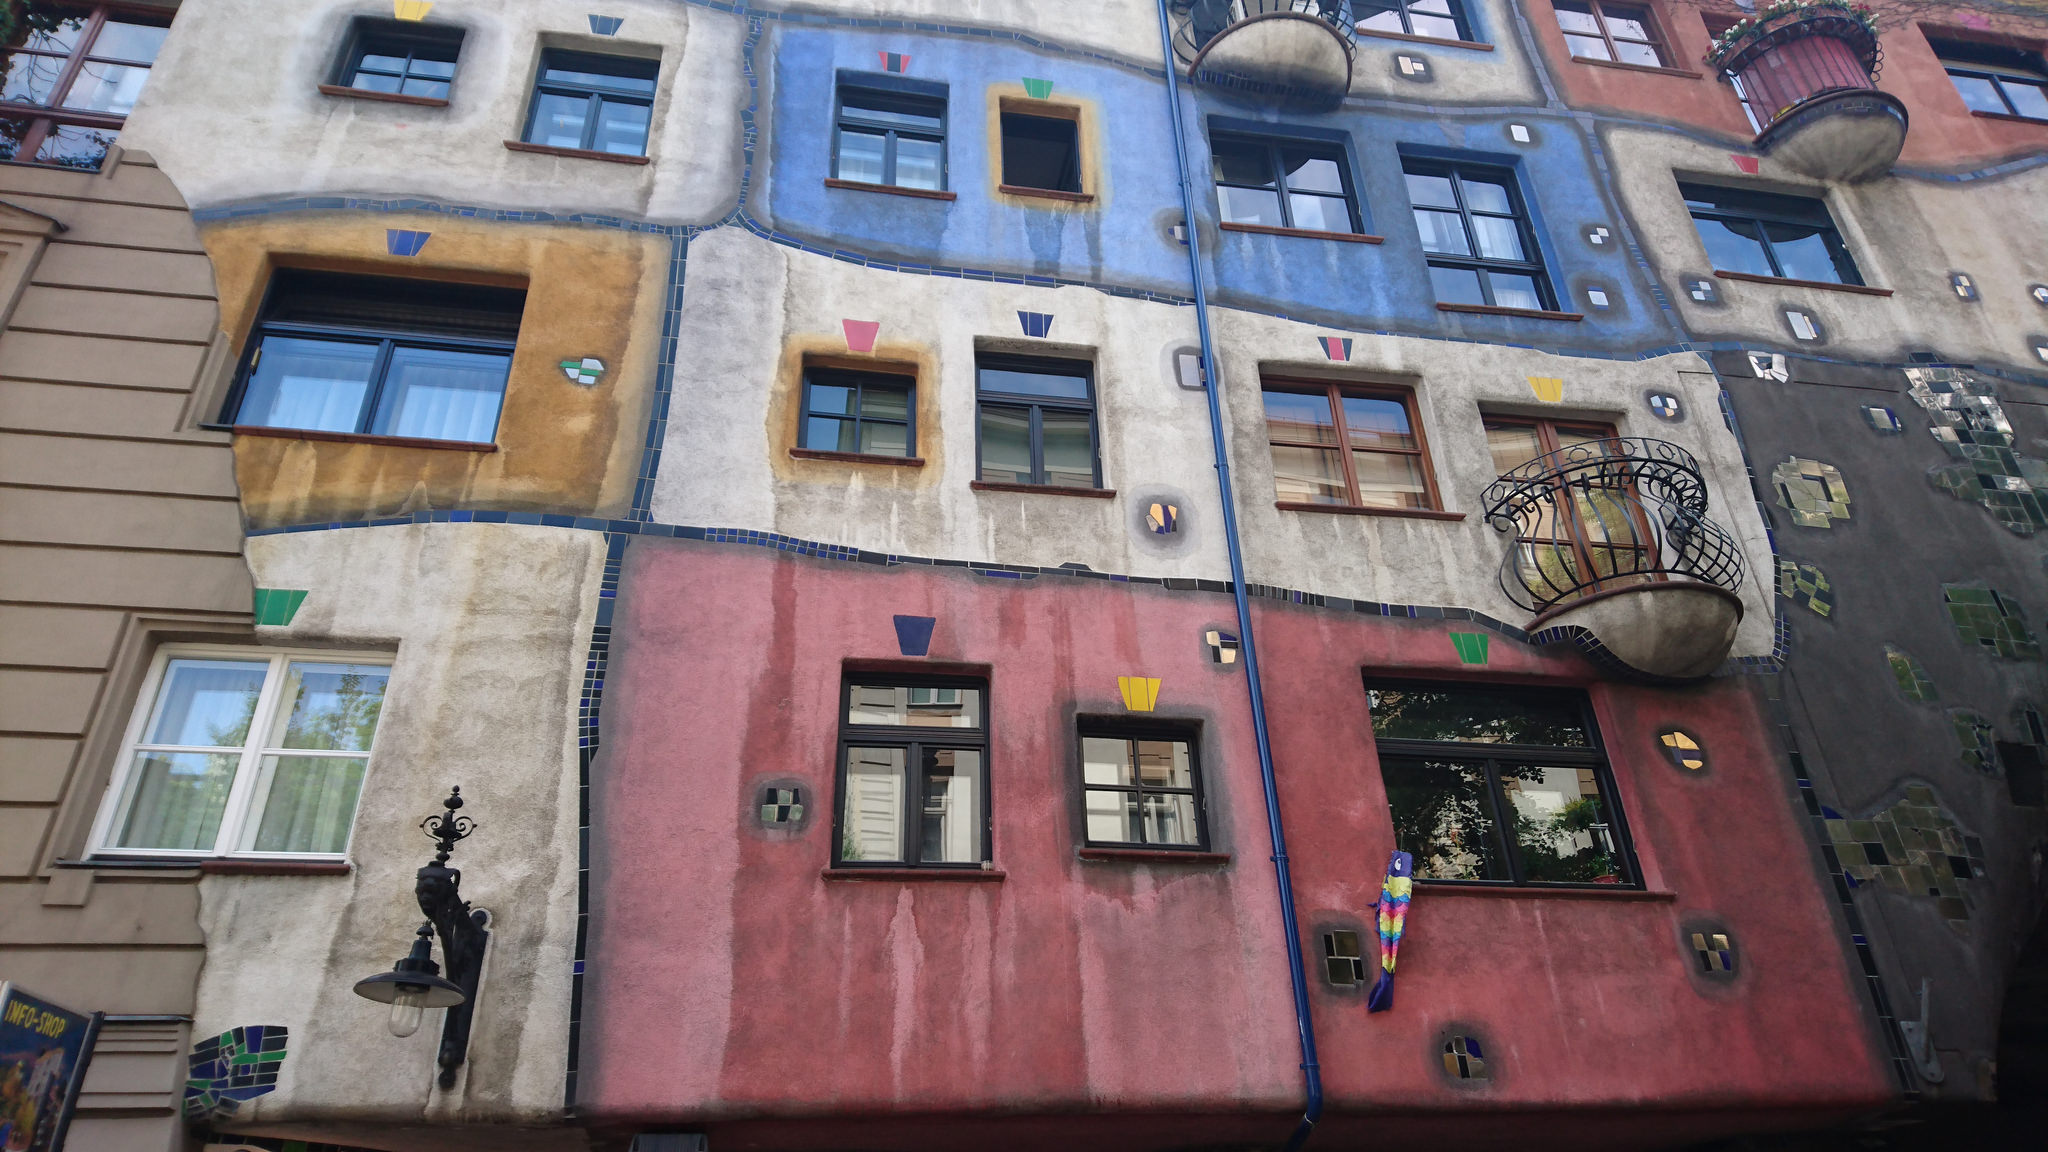 Here is another of Friedensreich Hundertwasser's famous buildings. Wouldn't you love to live here?